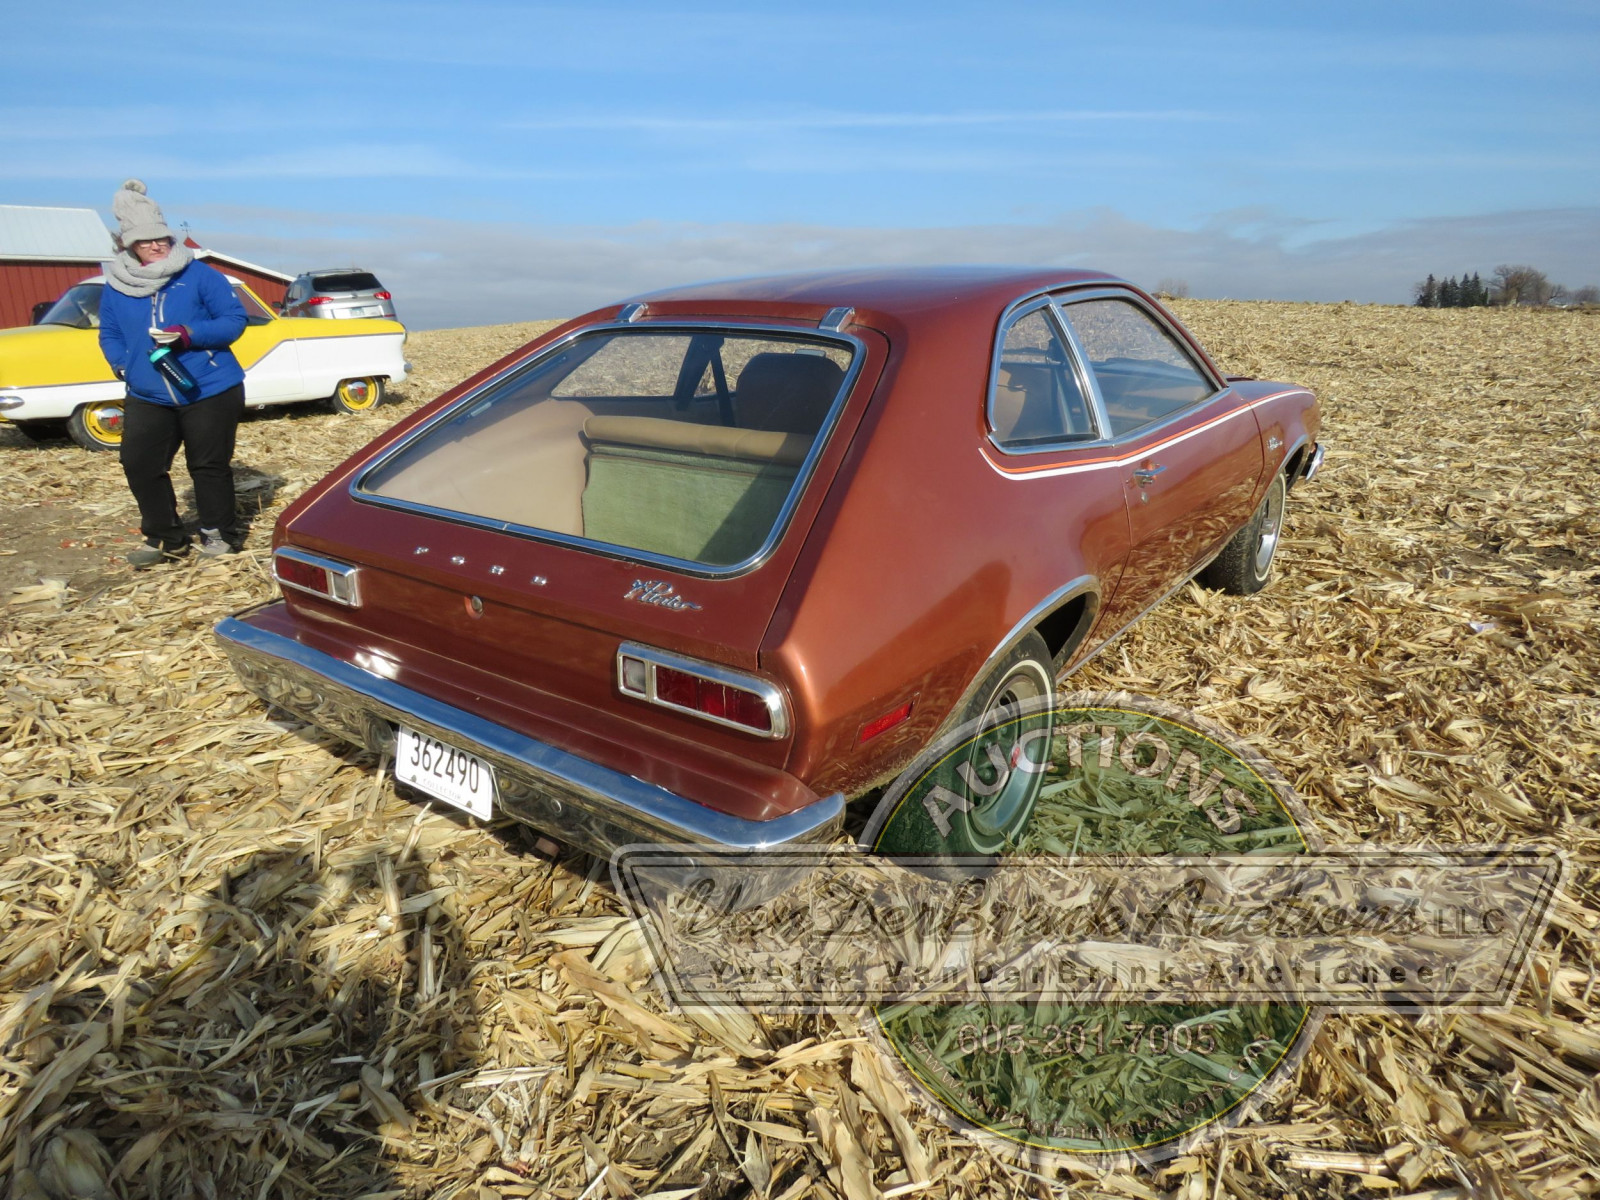 1976 Ford Pinto - Image 5